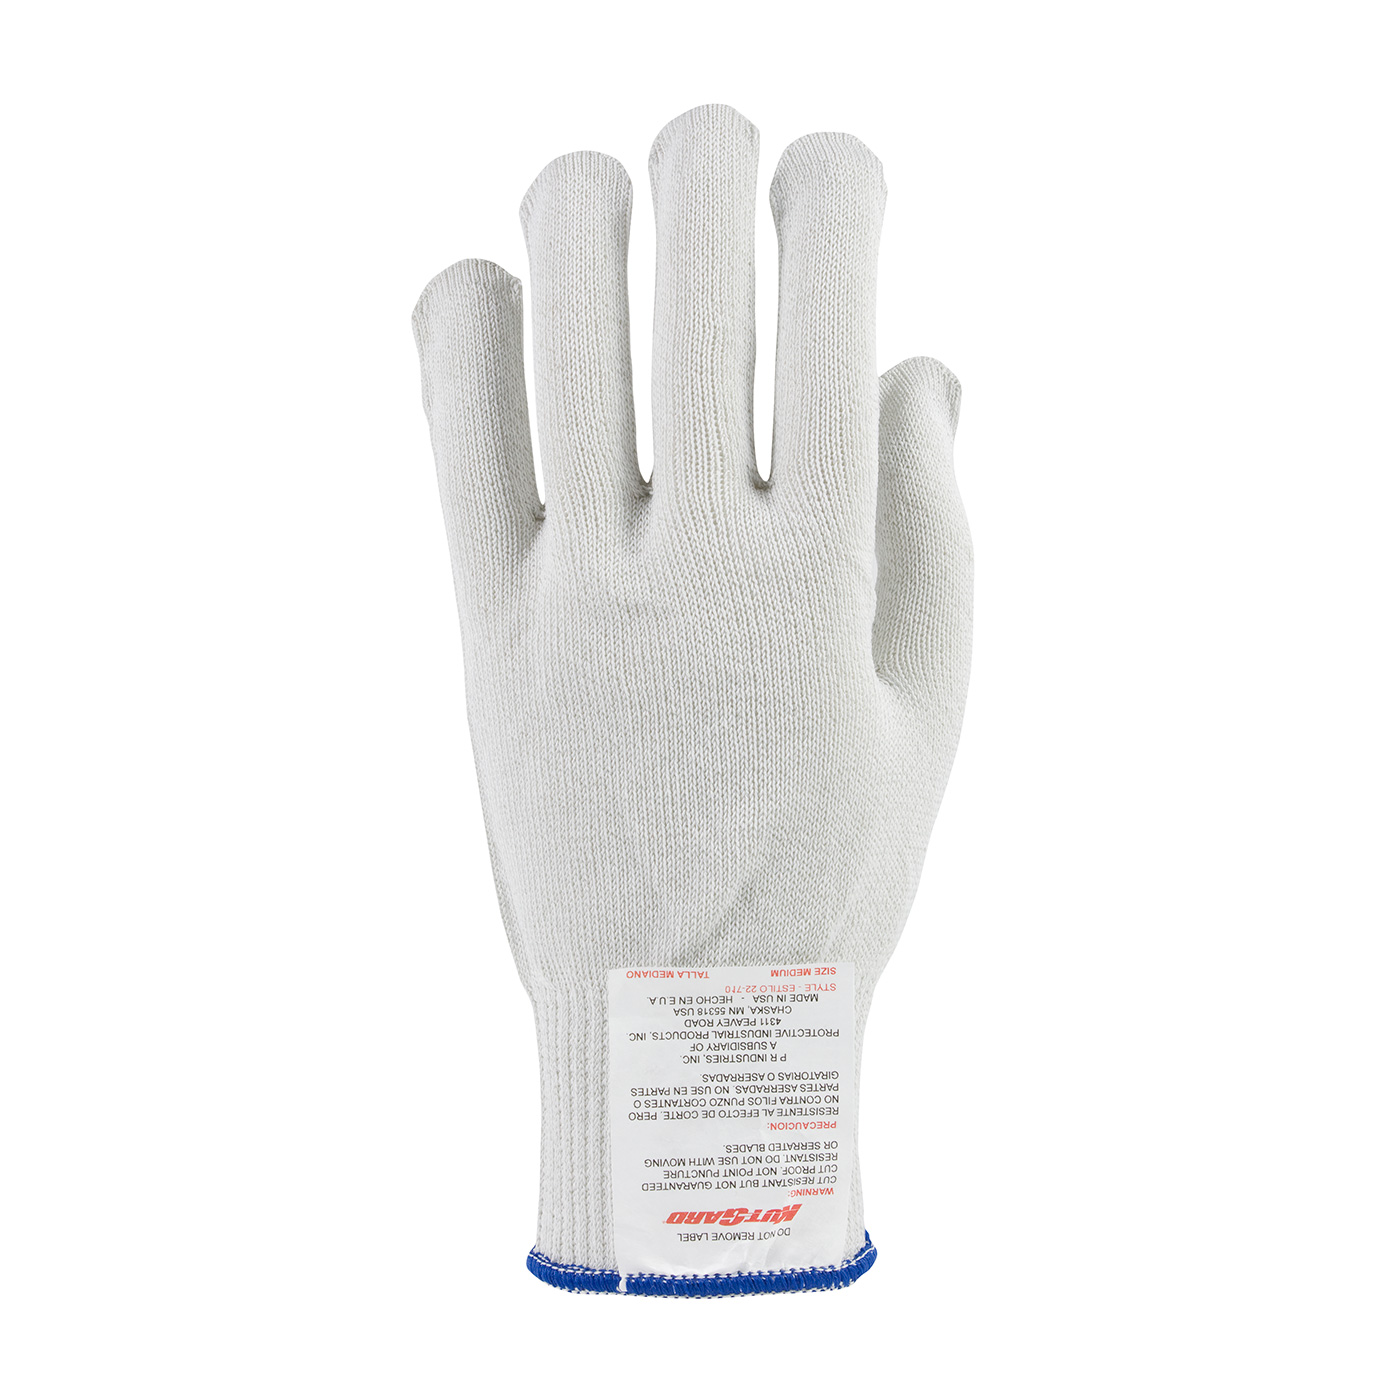 PIP #22-710  Kut-Gard® Polyester over Dyneema® / Stainless Steel Core Seamless Glove - Medium Weight